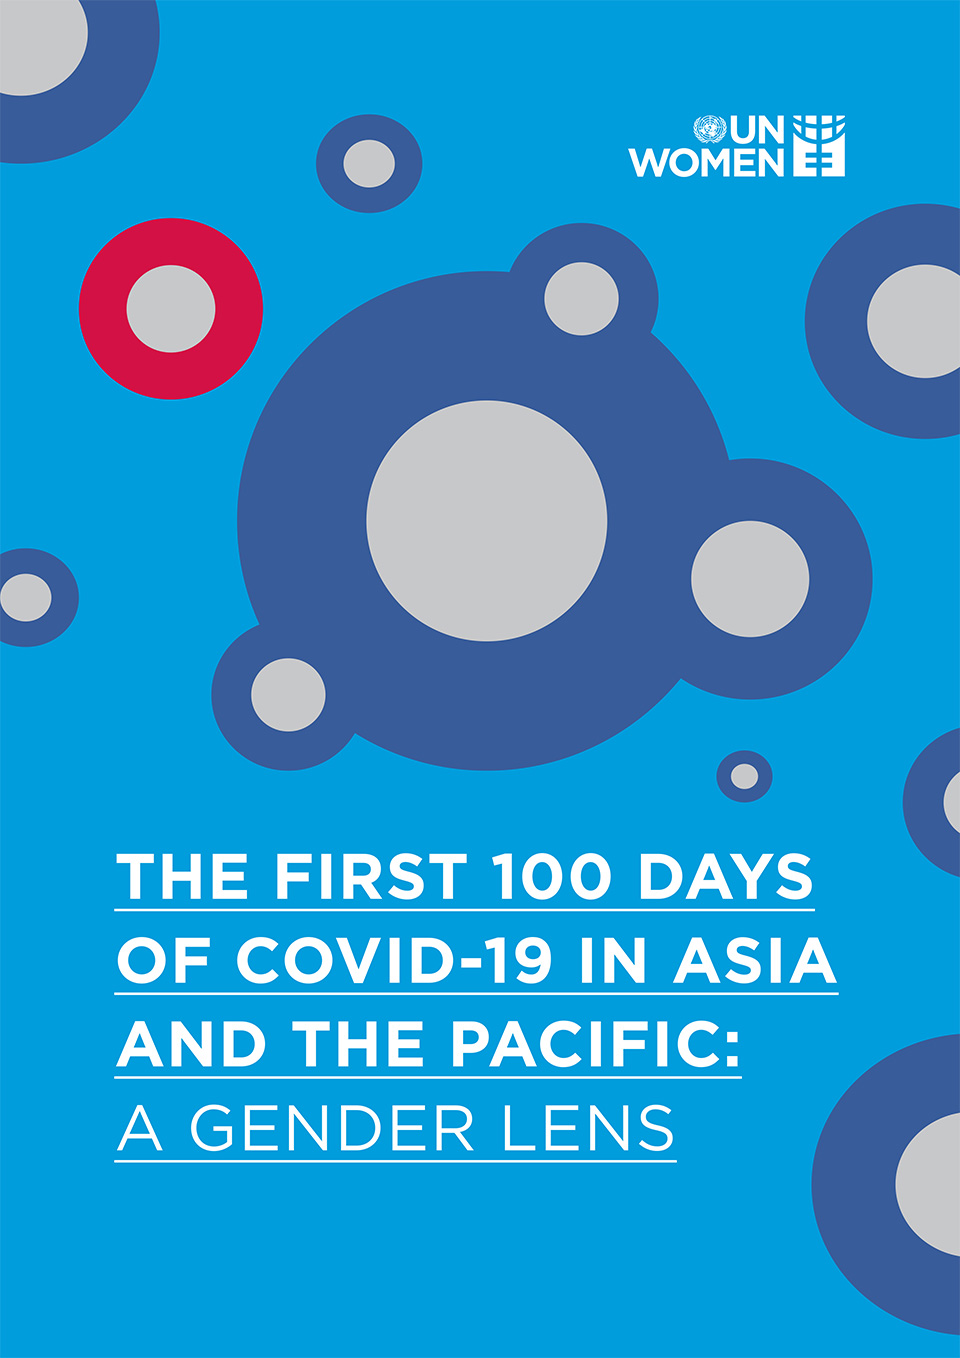 The First 100 Days of the COVID-19 Outbreak in Asia and the Pacific: A Gender Lens